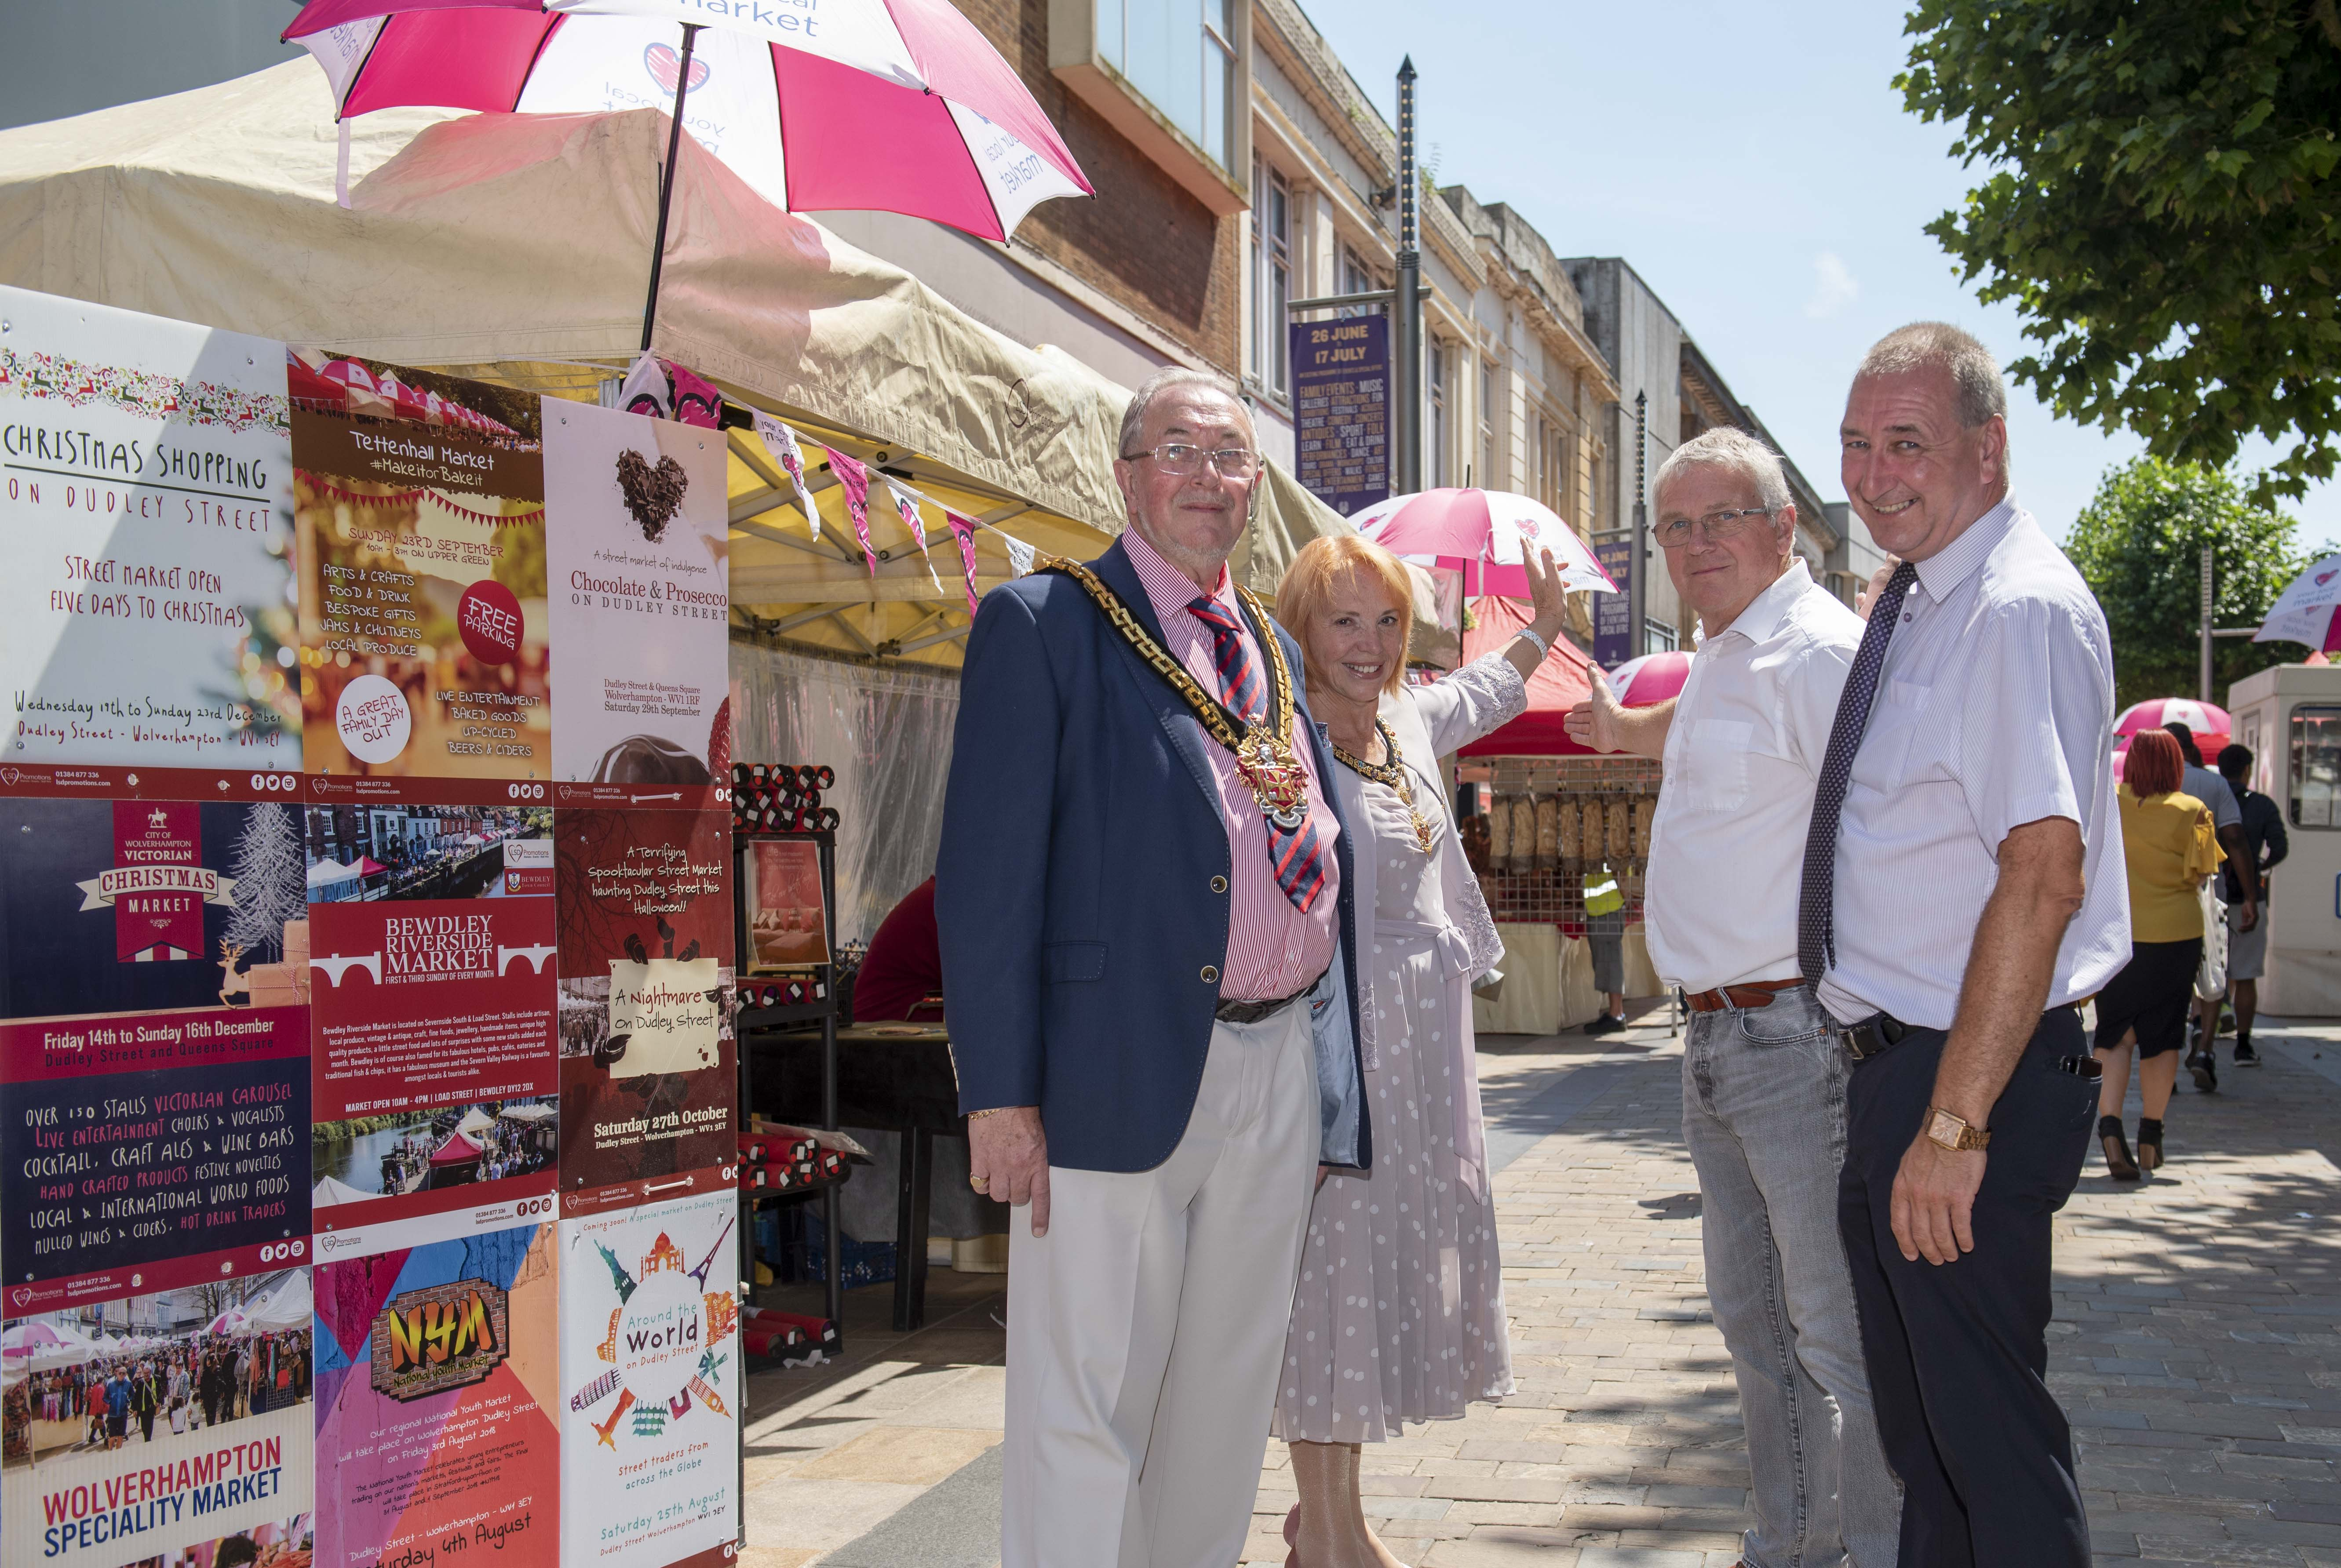 Themed markets coming soon to Dudley Street